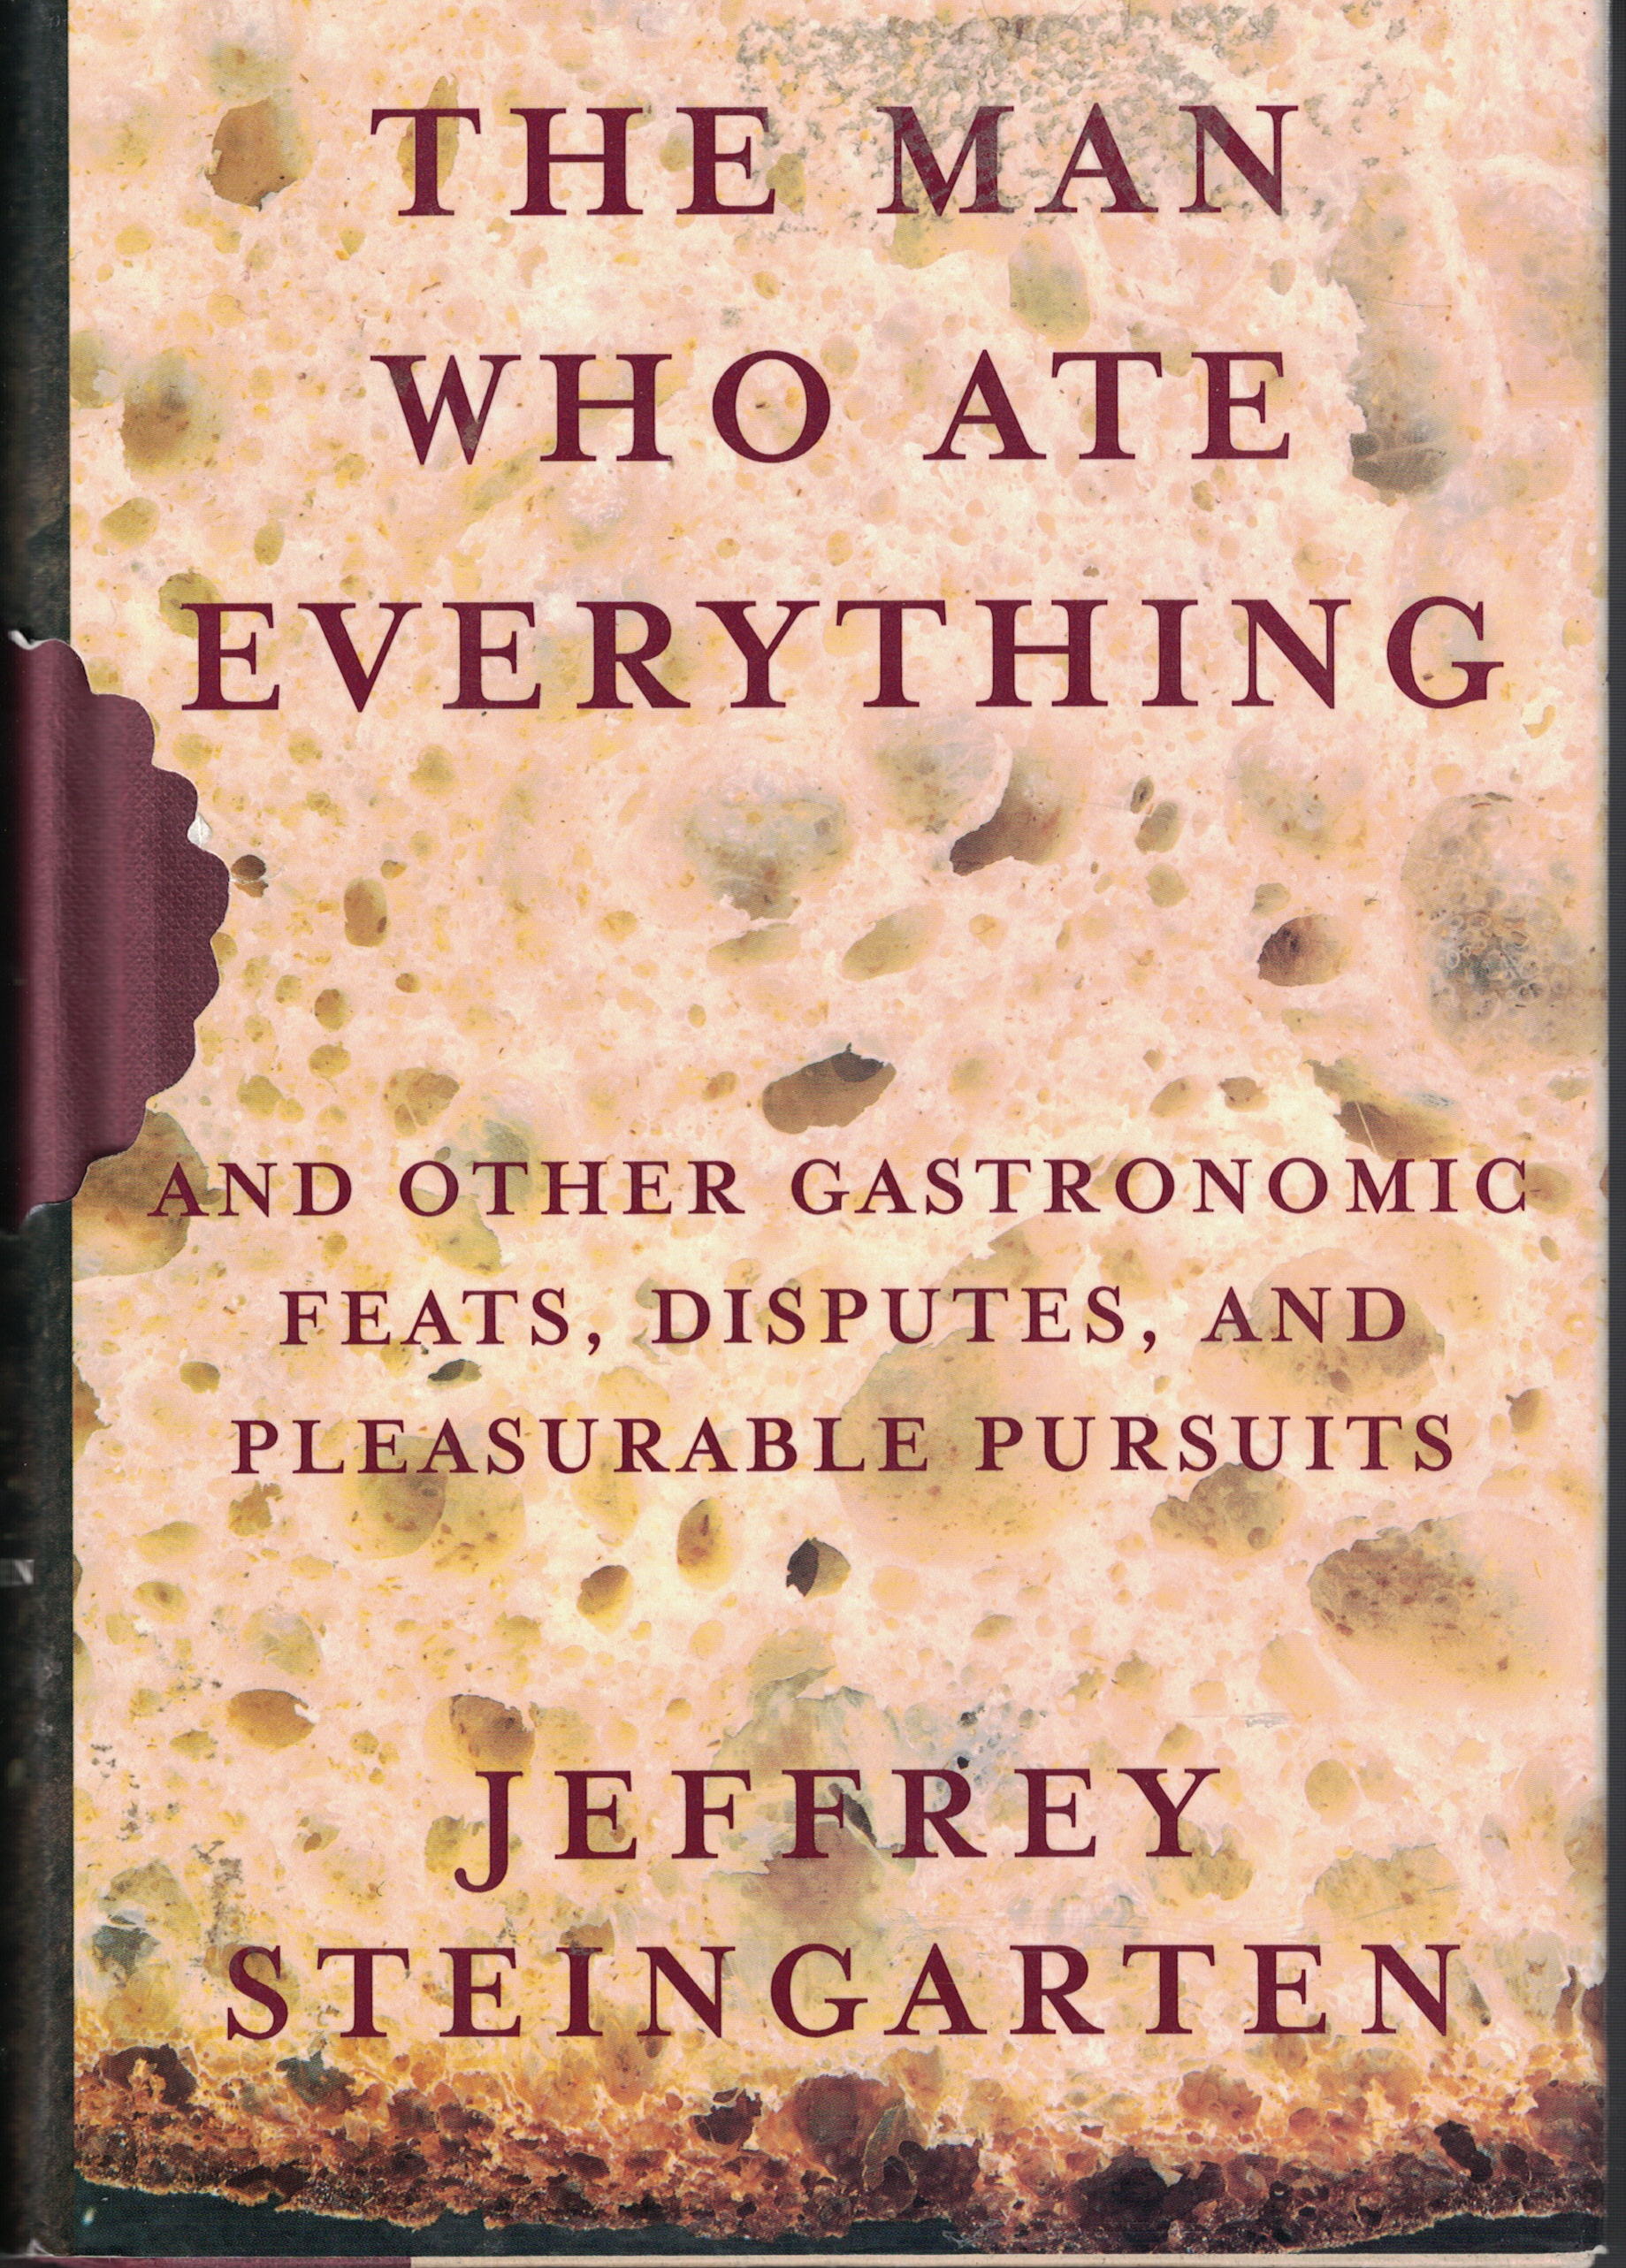 Image for Man Who Ate Everything And Other Gastronomic Feats, Disputes and Pleasurable Pursuits